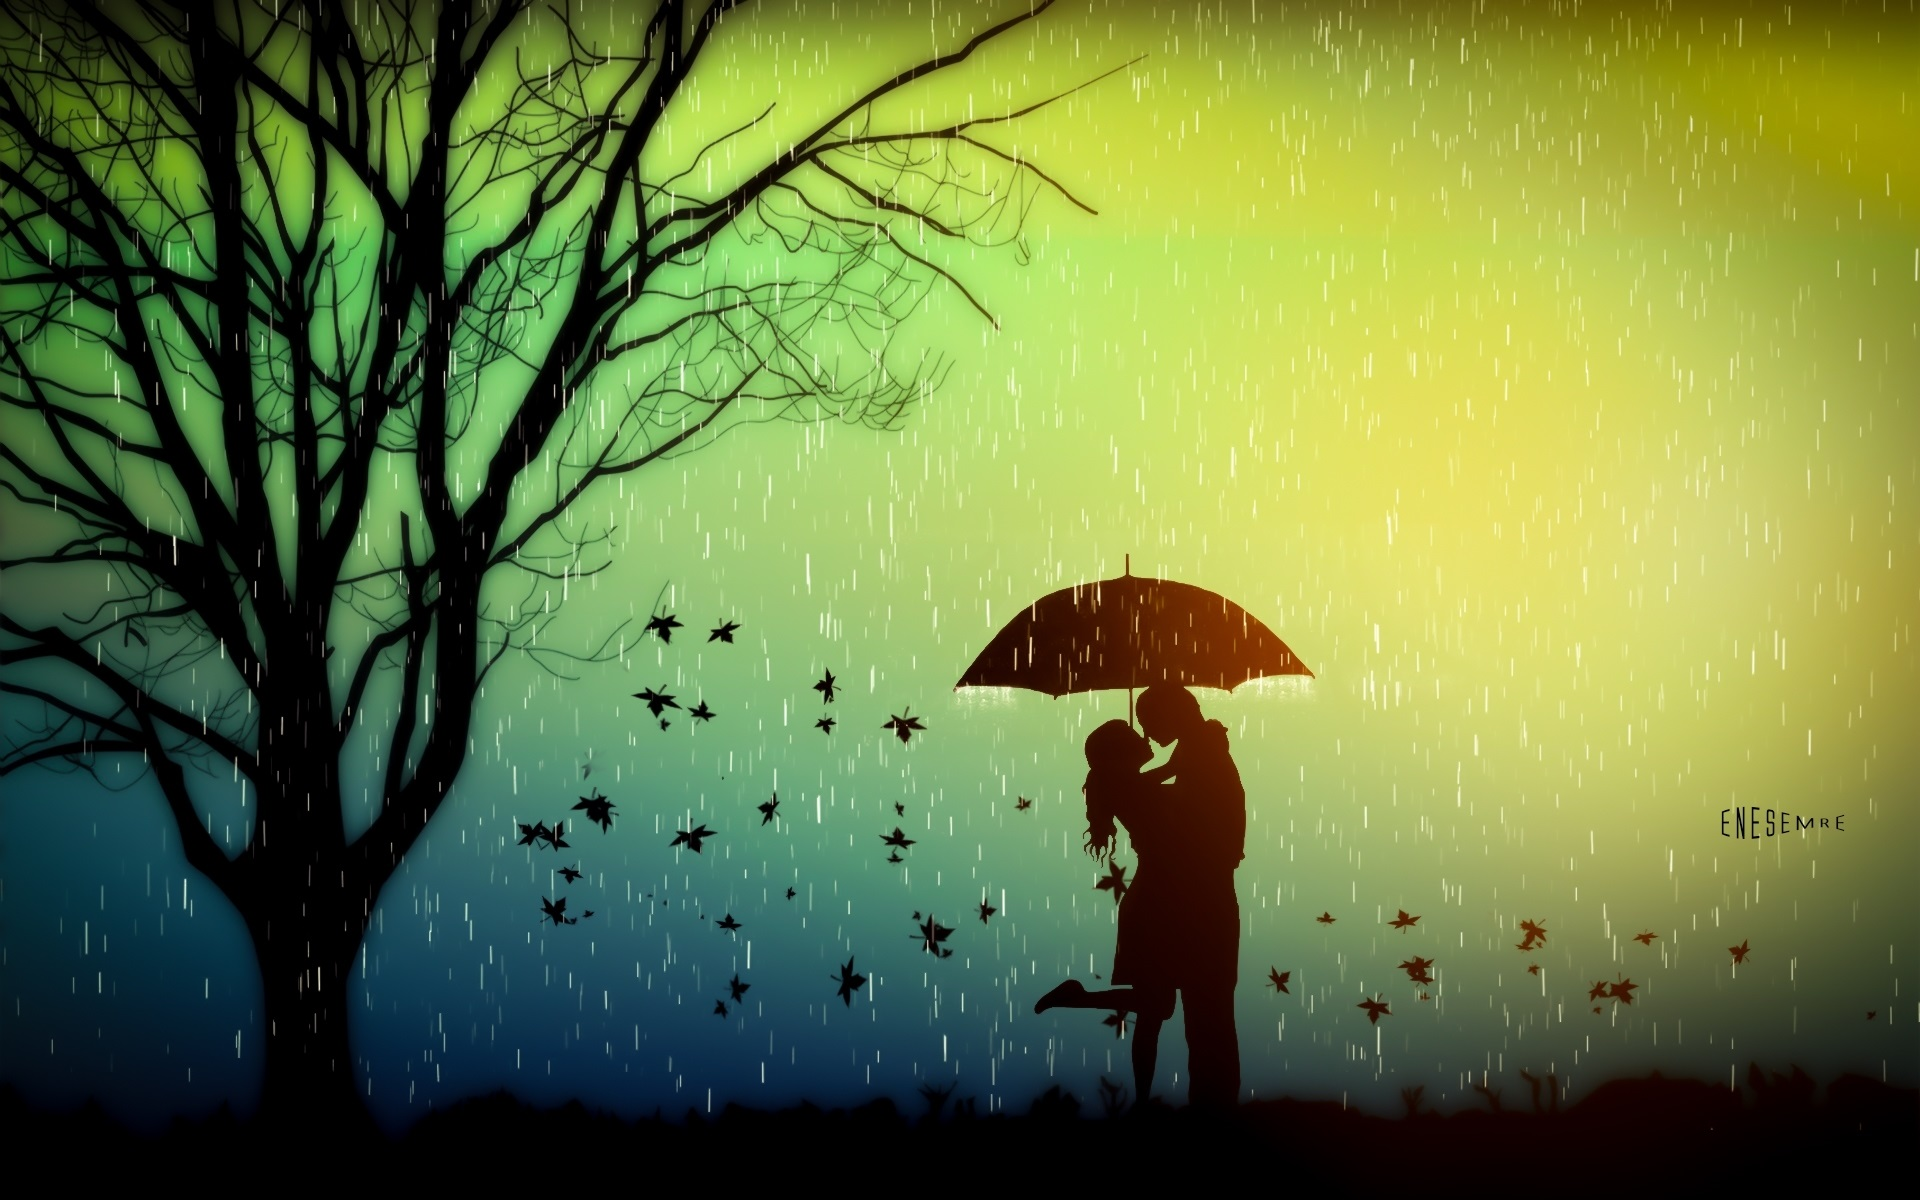 Cute Couples Wallpapers Full Hd Romance Lovers Tree Leaves Rainy Day Umbrella